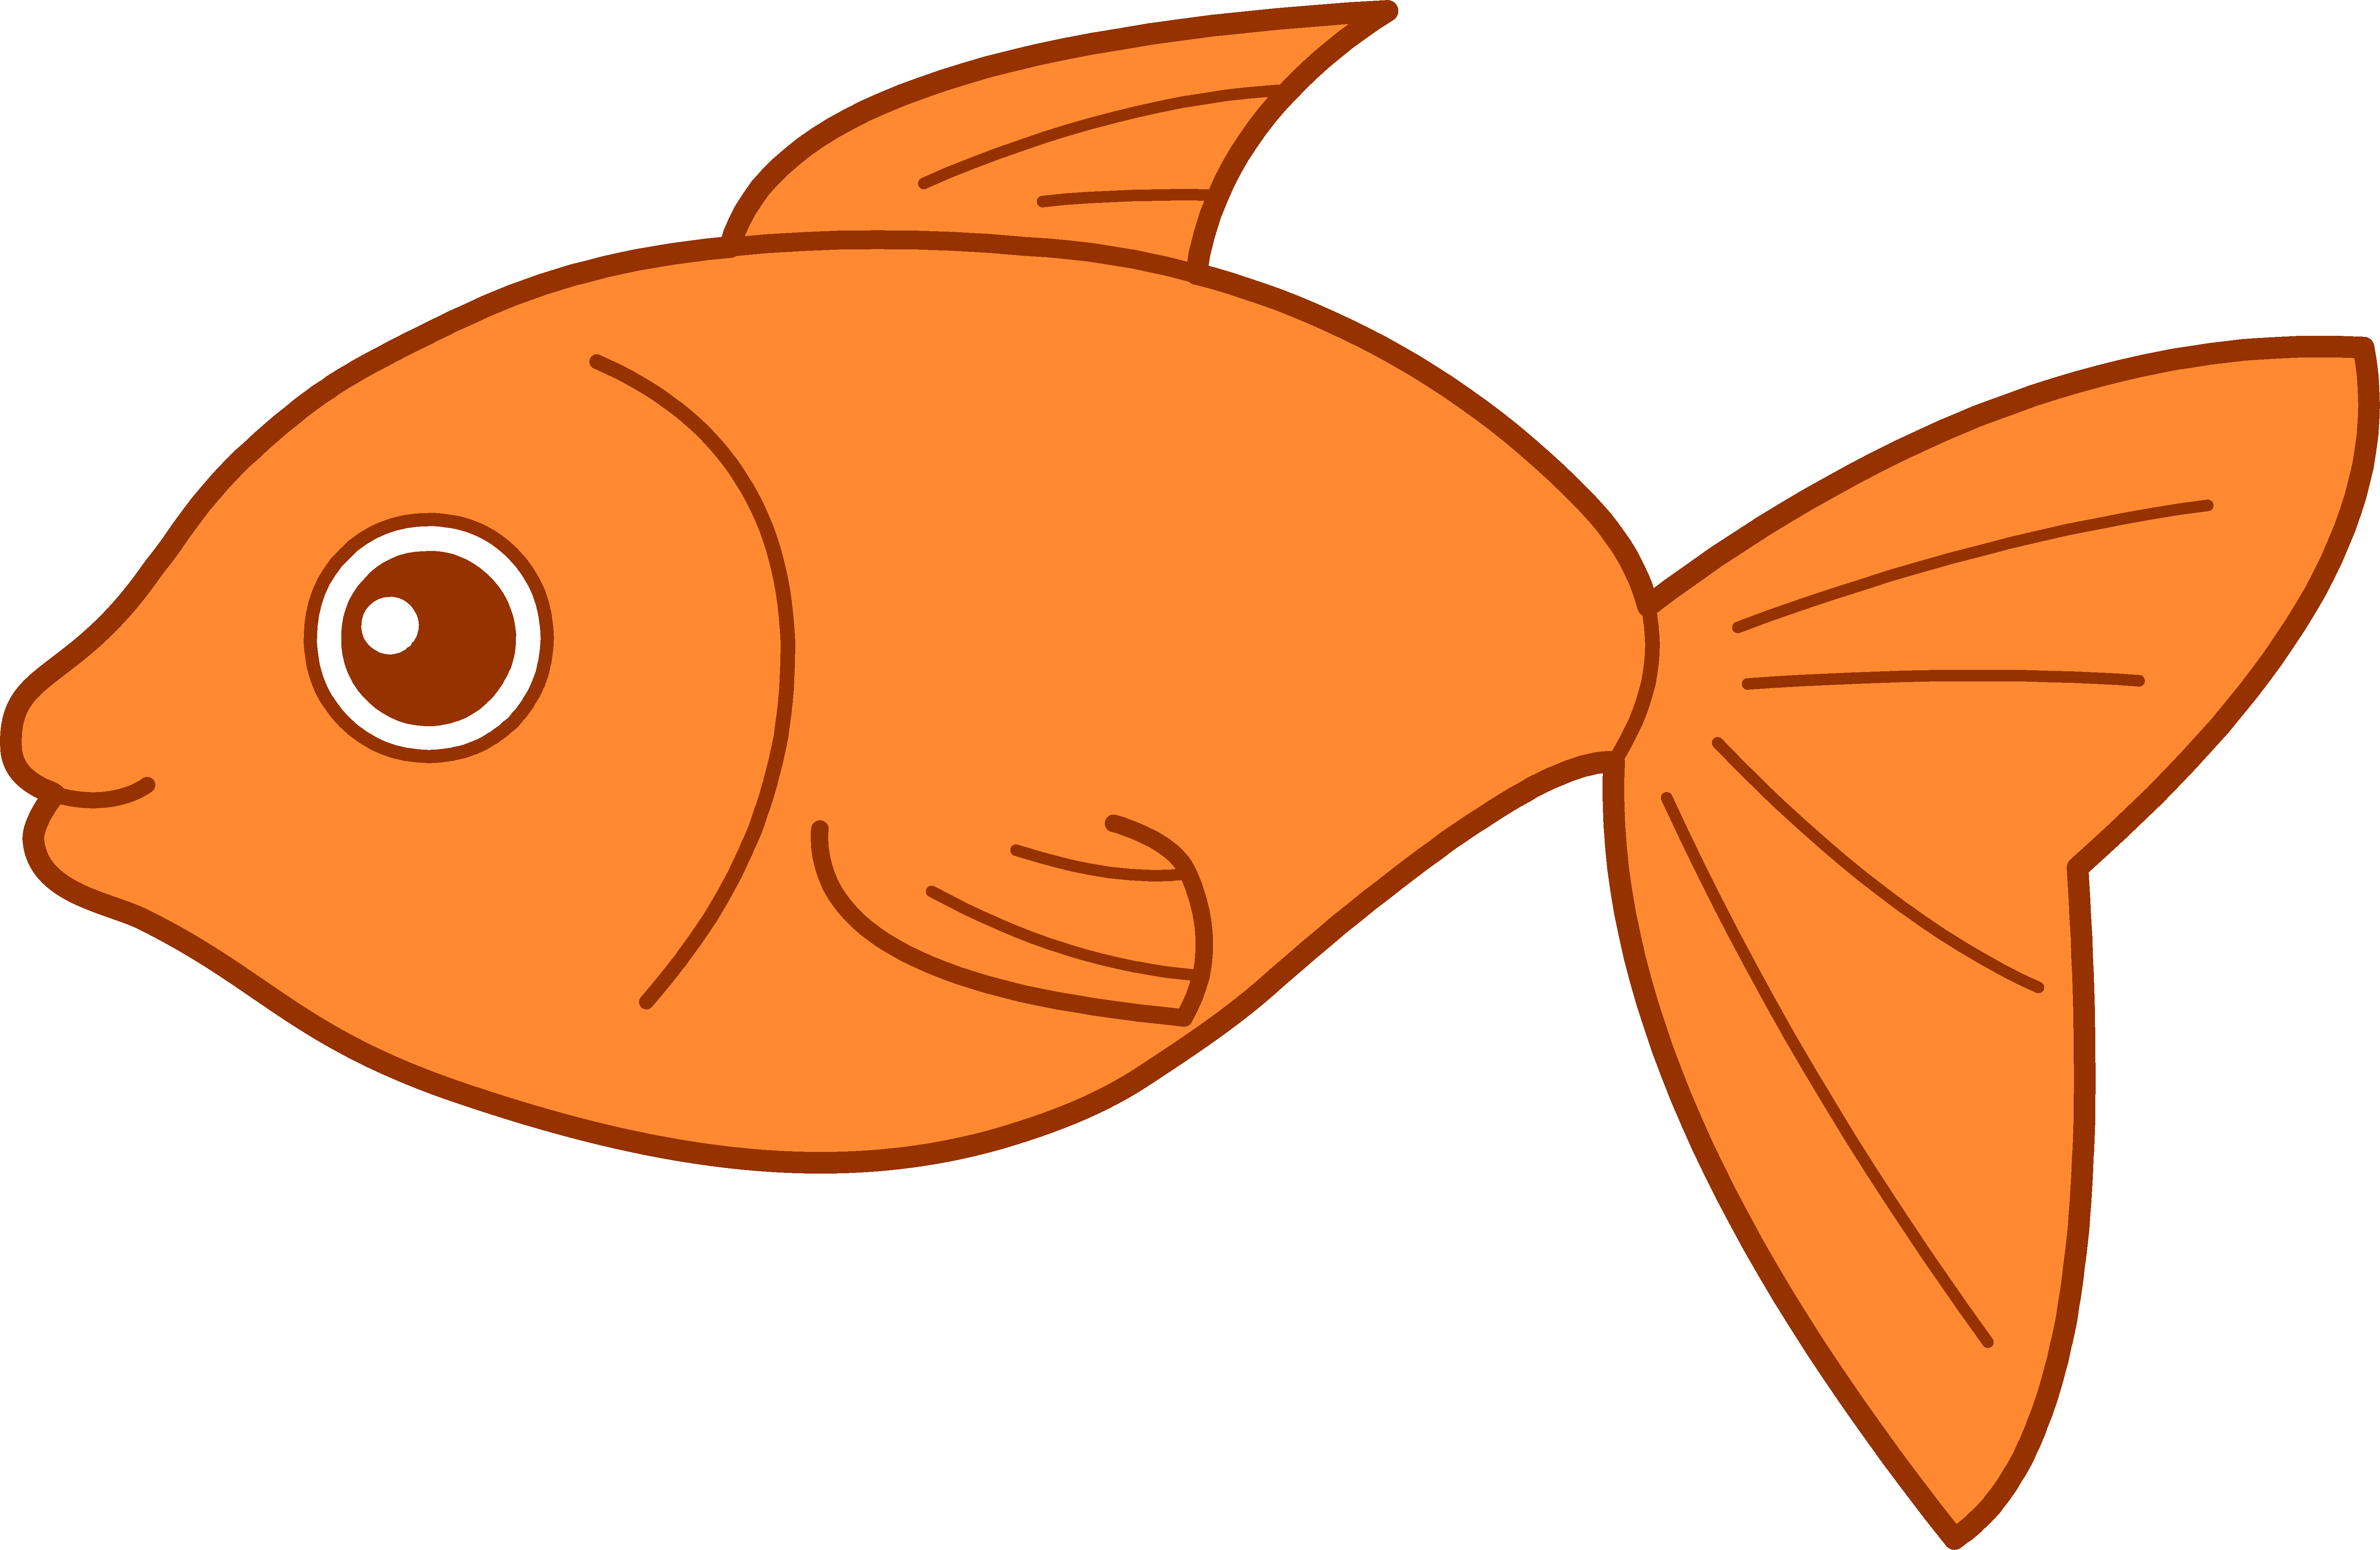 goldfish clipart sea creature goldfish sea creature transparent free for download on webstockreview 2020 webstockreview